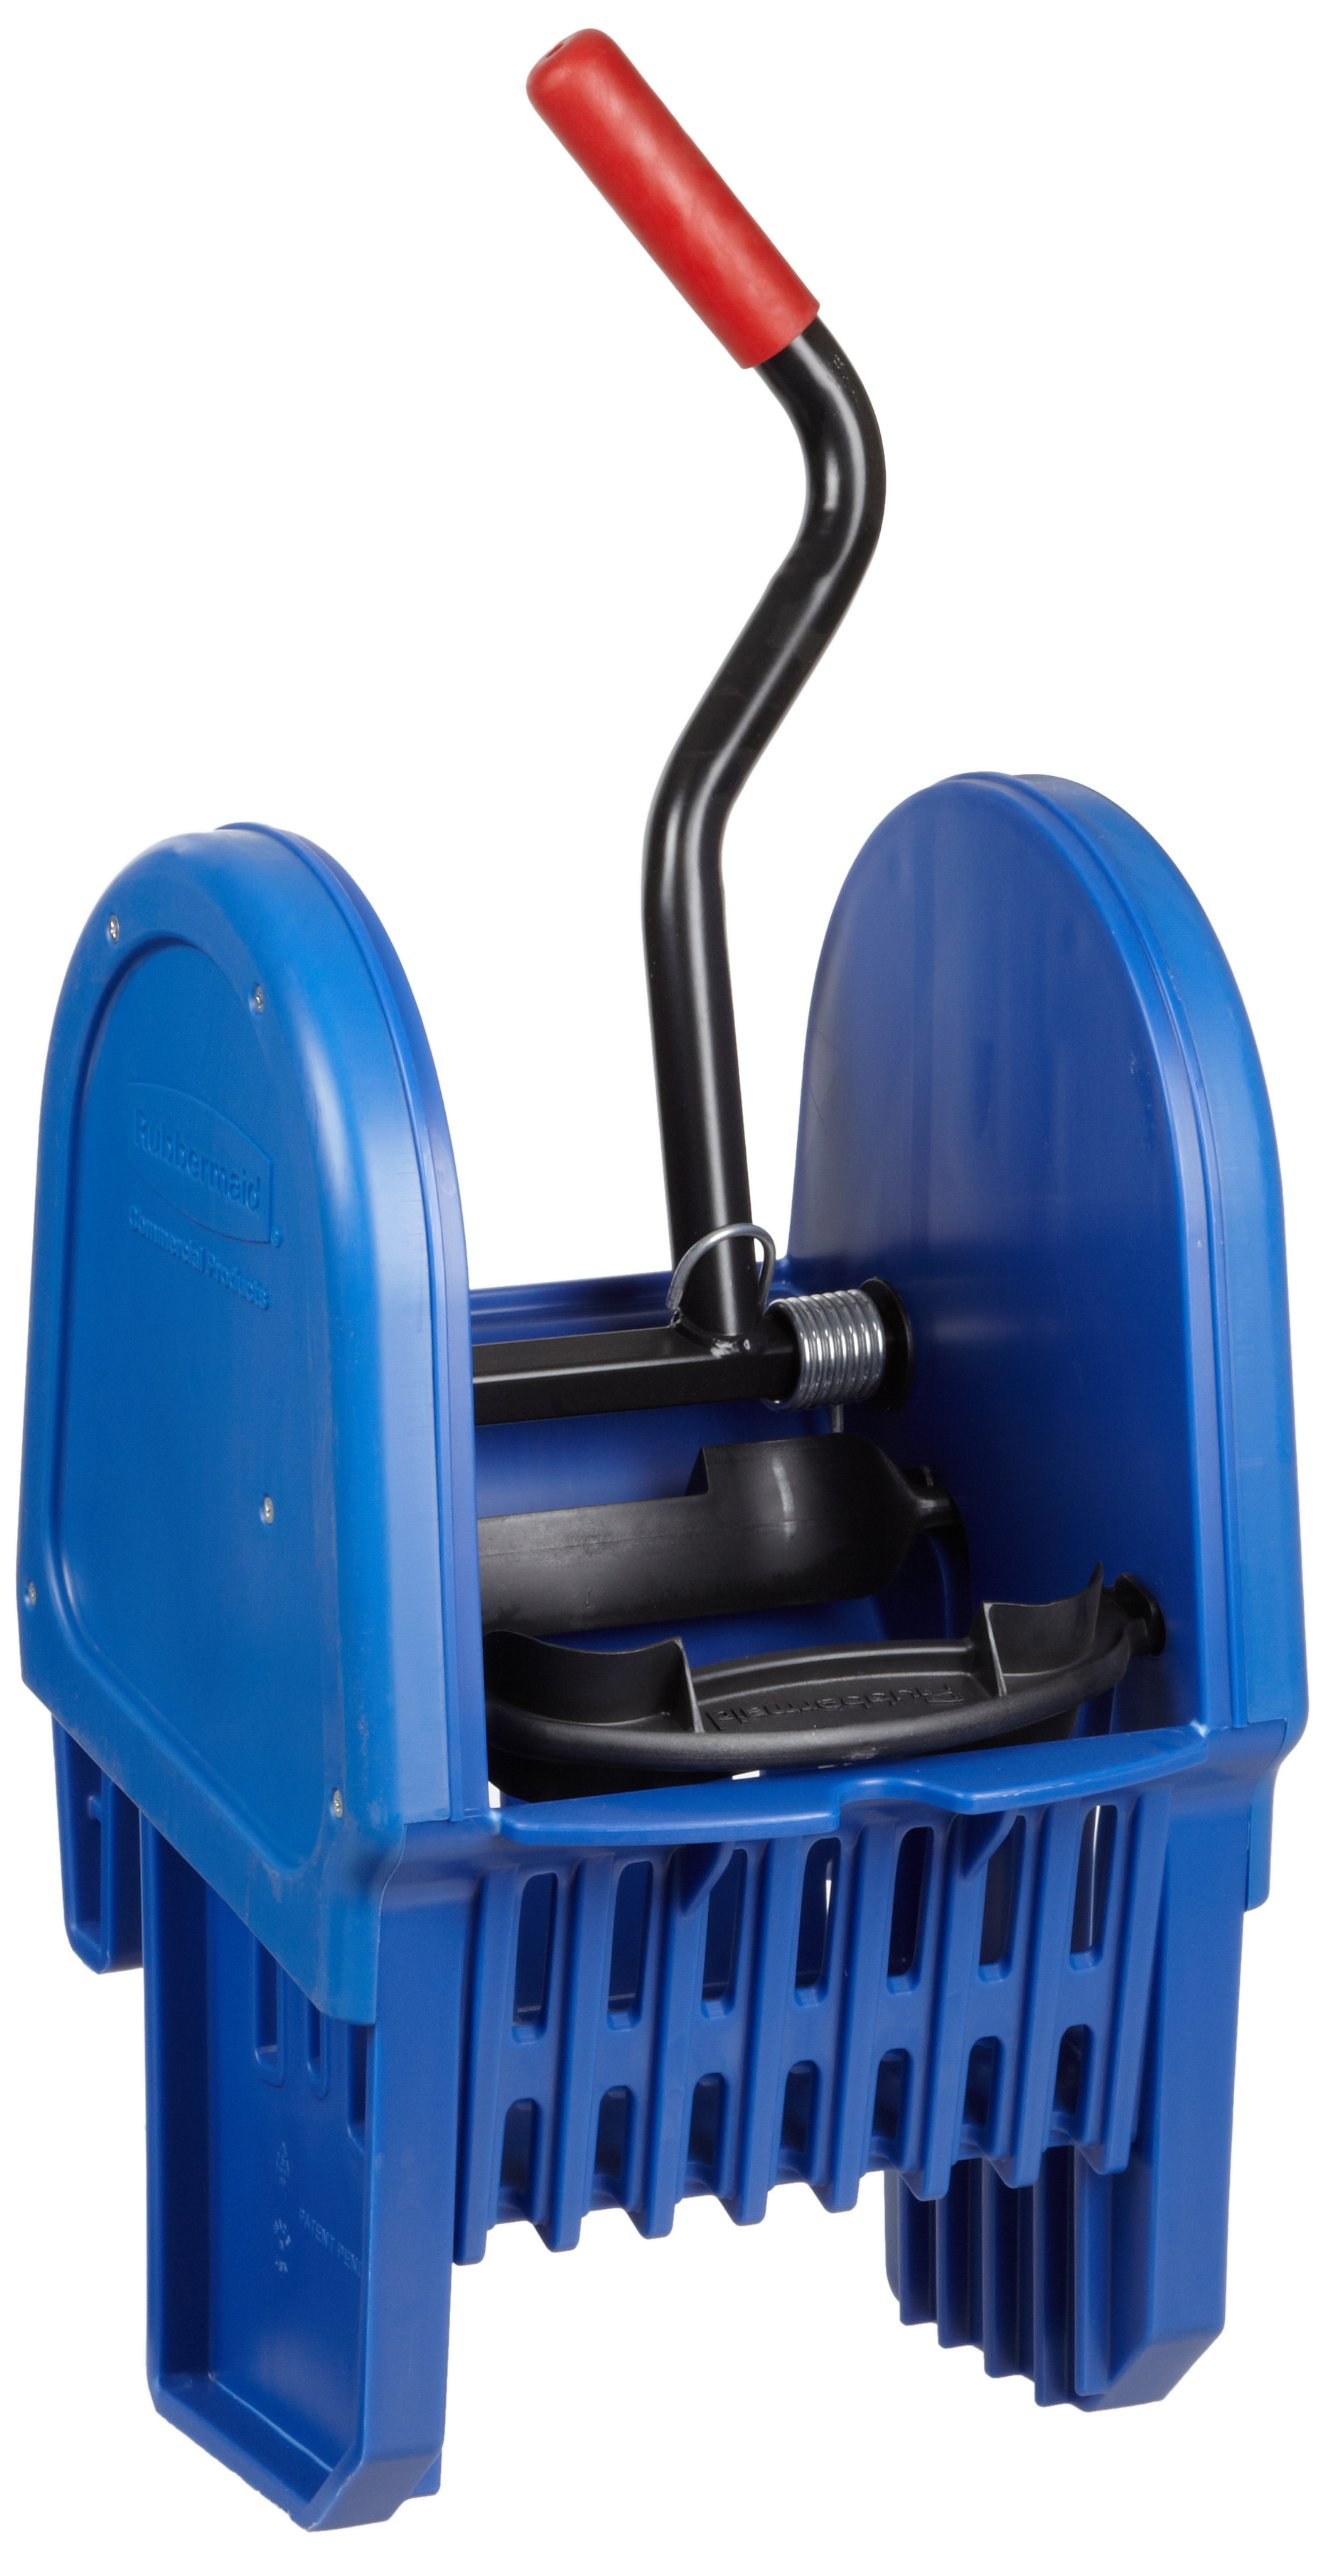 Rubbermaid Commercial FG757588BLUE Down Press Wringer for WaveBrake Buckets, 16 - 32-Ounce Capacity, Blue by Rubbermaid Commercial Products (Image #1)